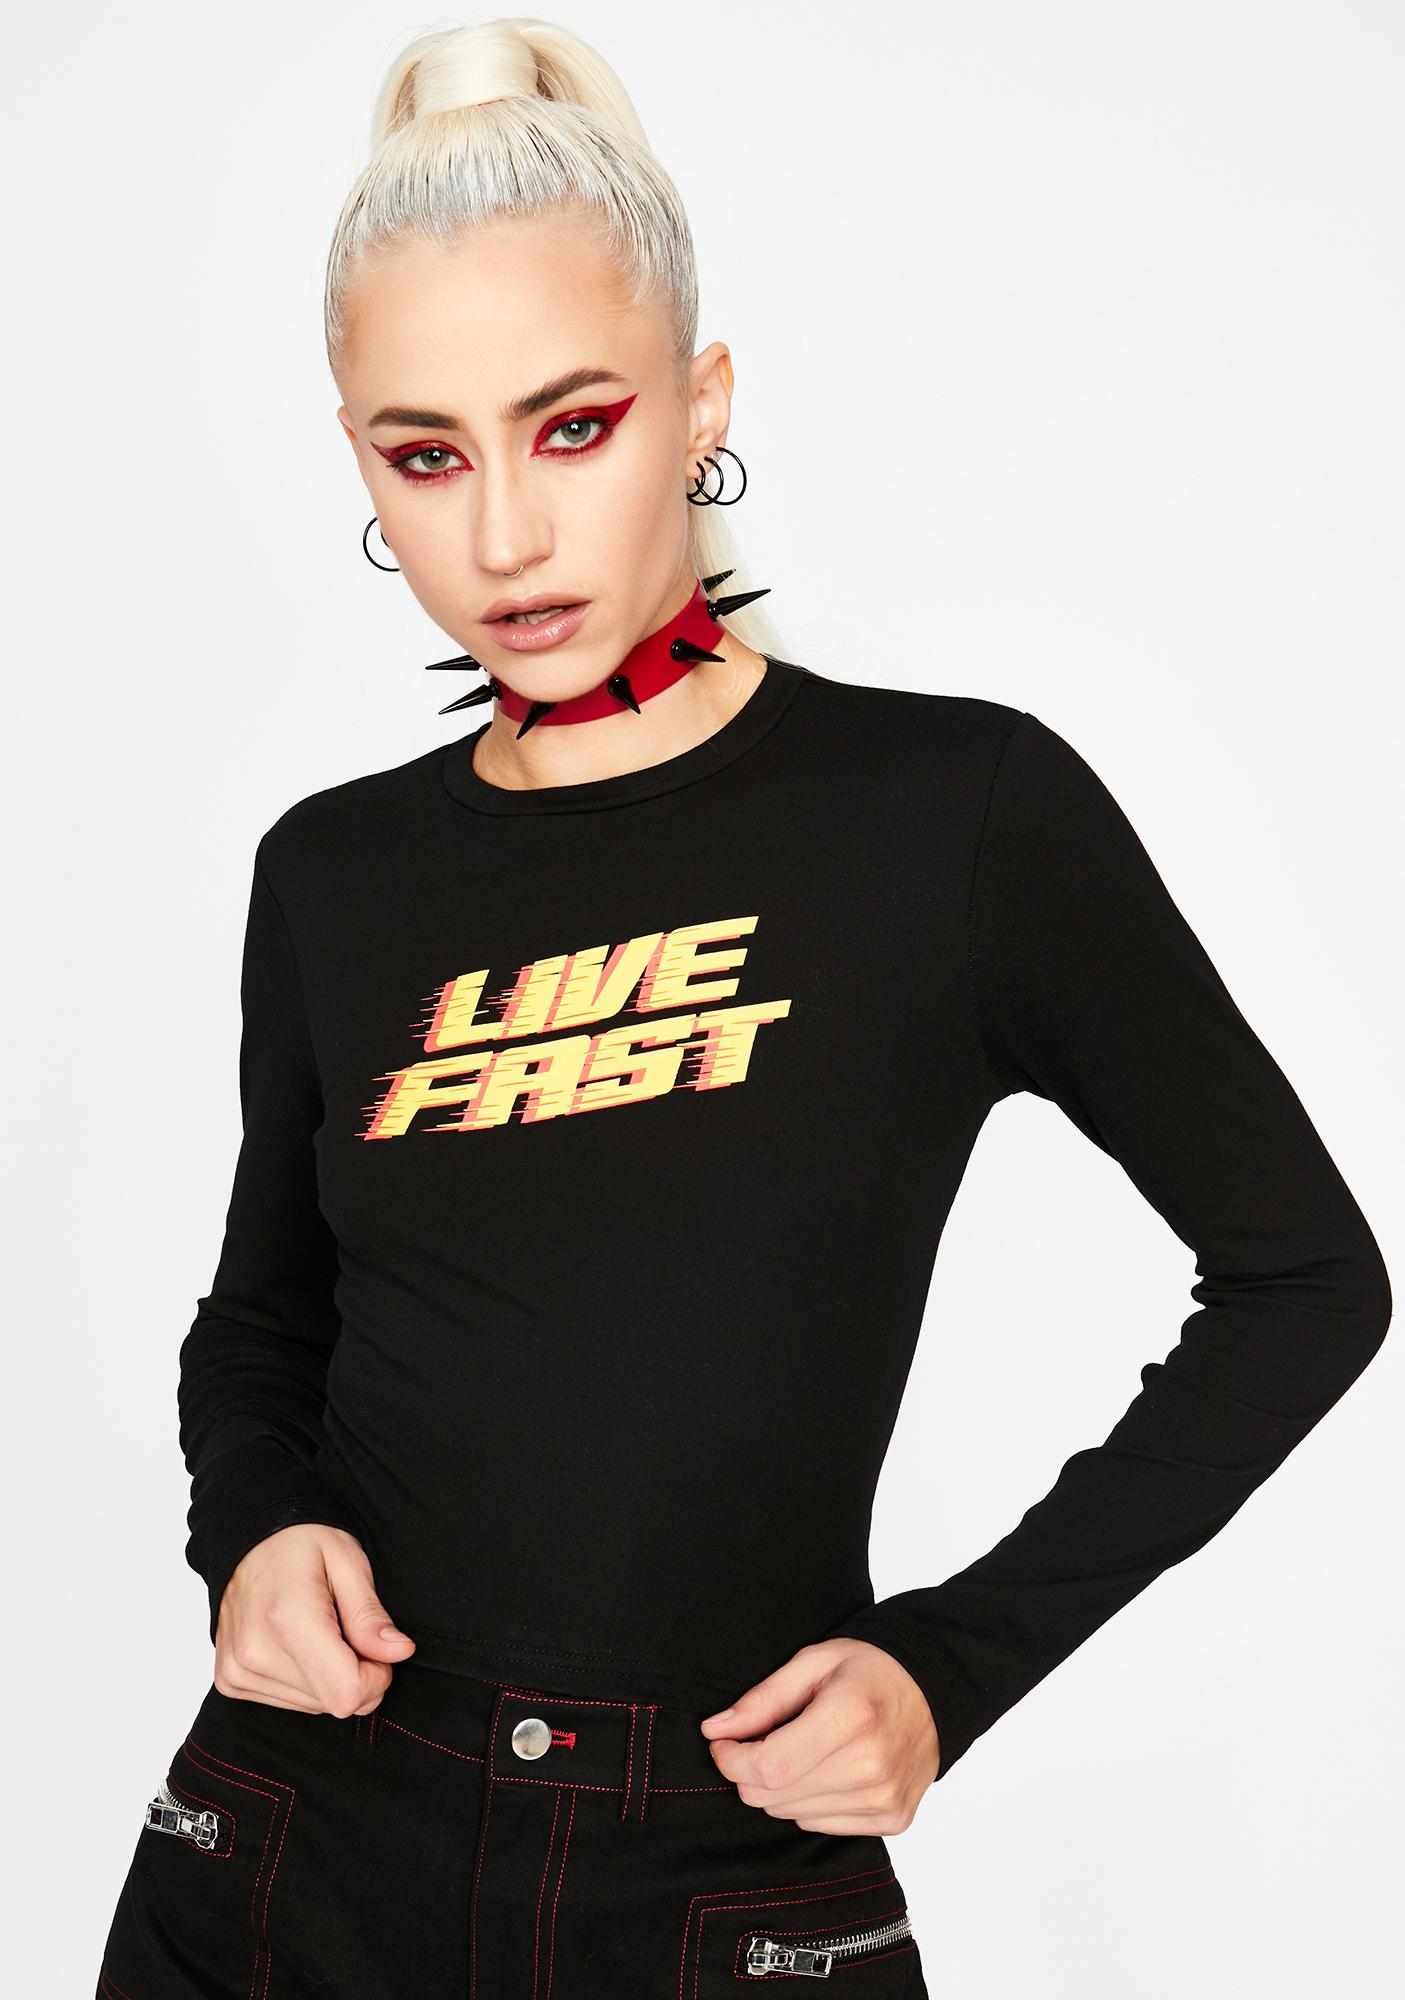 HOROSCOPEZ Fast Lane Life Graphic Tee